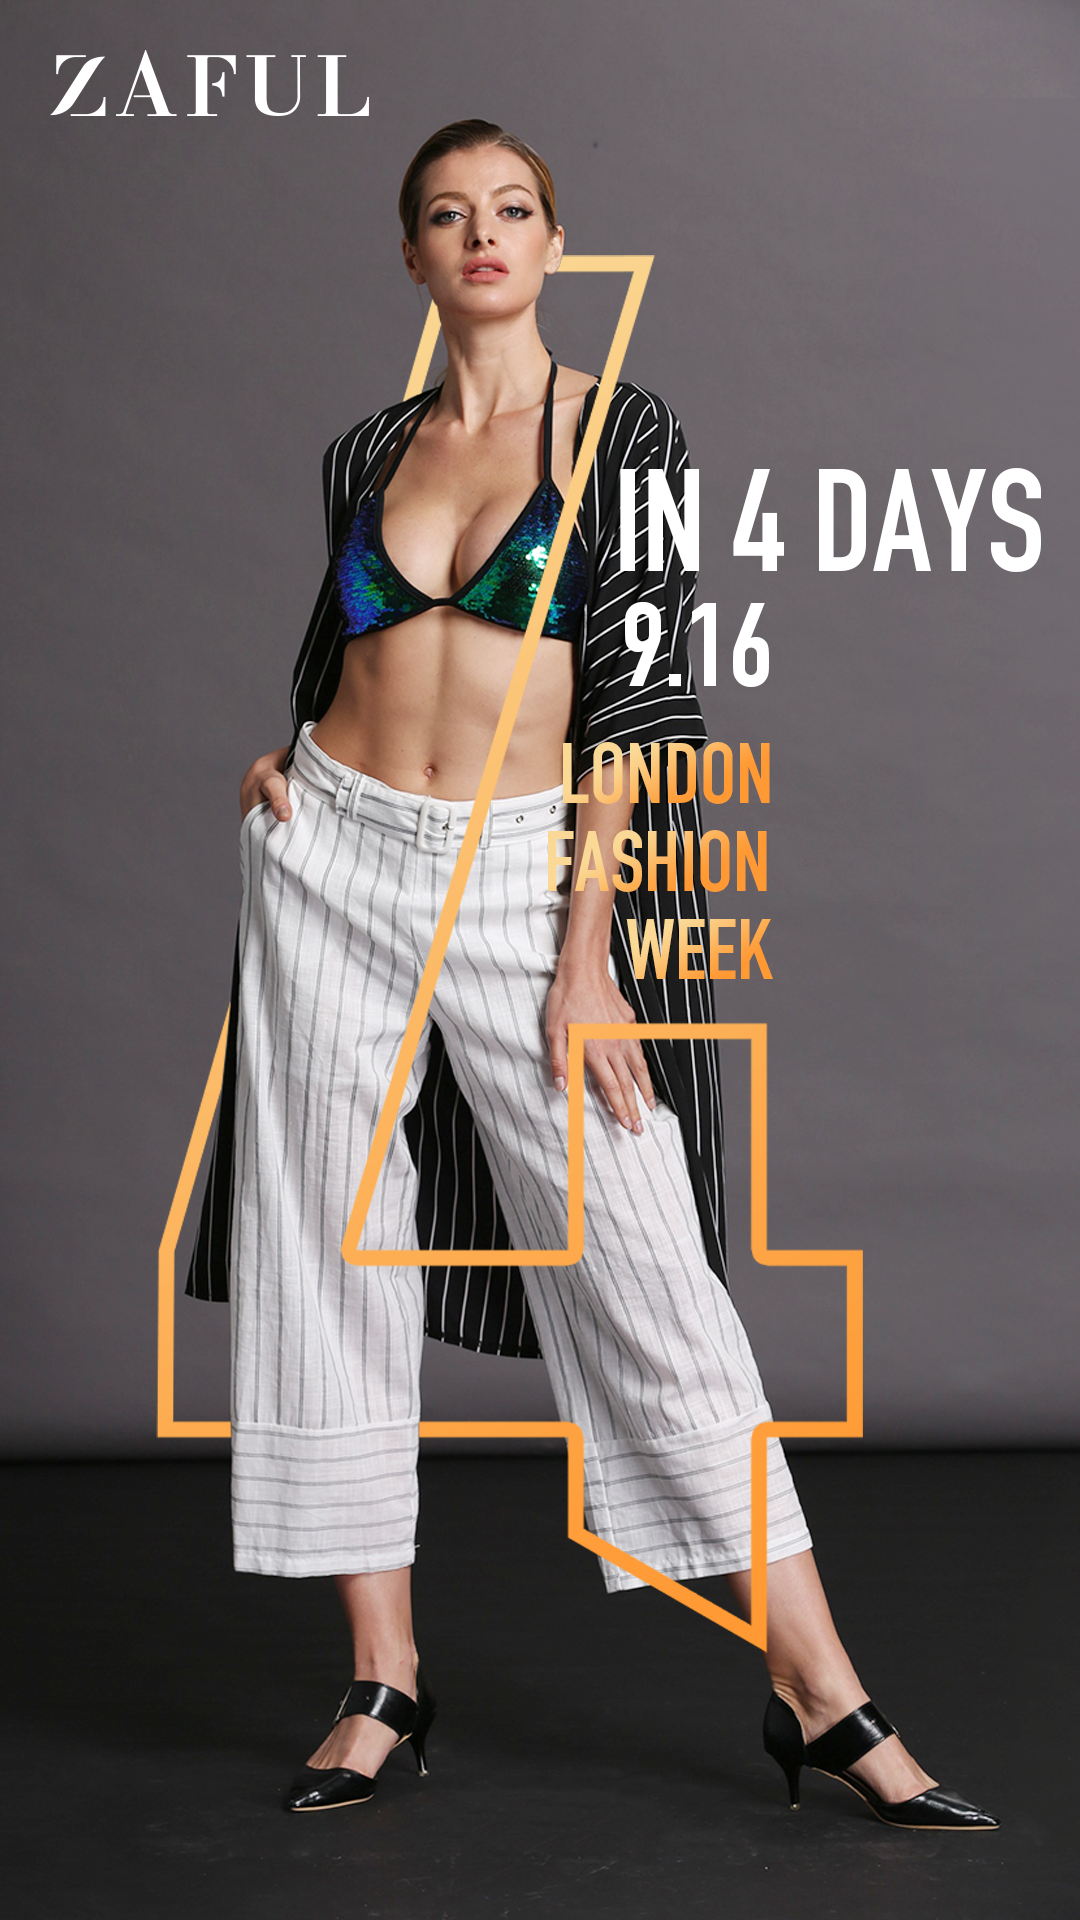 Zaful london fashion week this september zaful